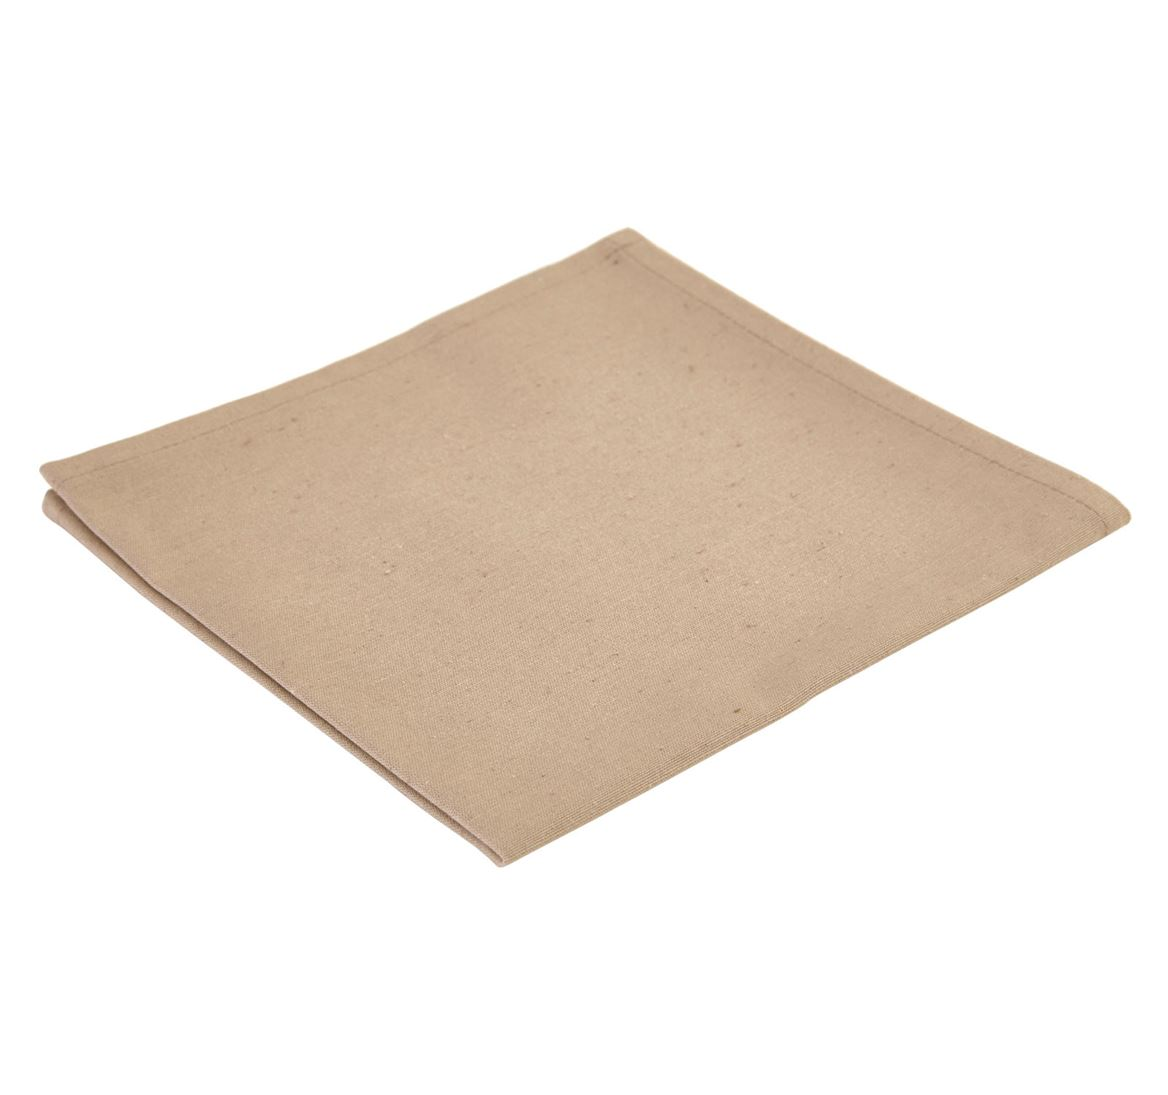 RECYCLE Servilleta taupe An. 43 x L 43 cm_recycle-servilleta-taupe-an--43-x-l-43-cm